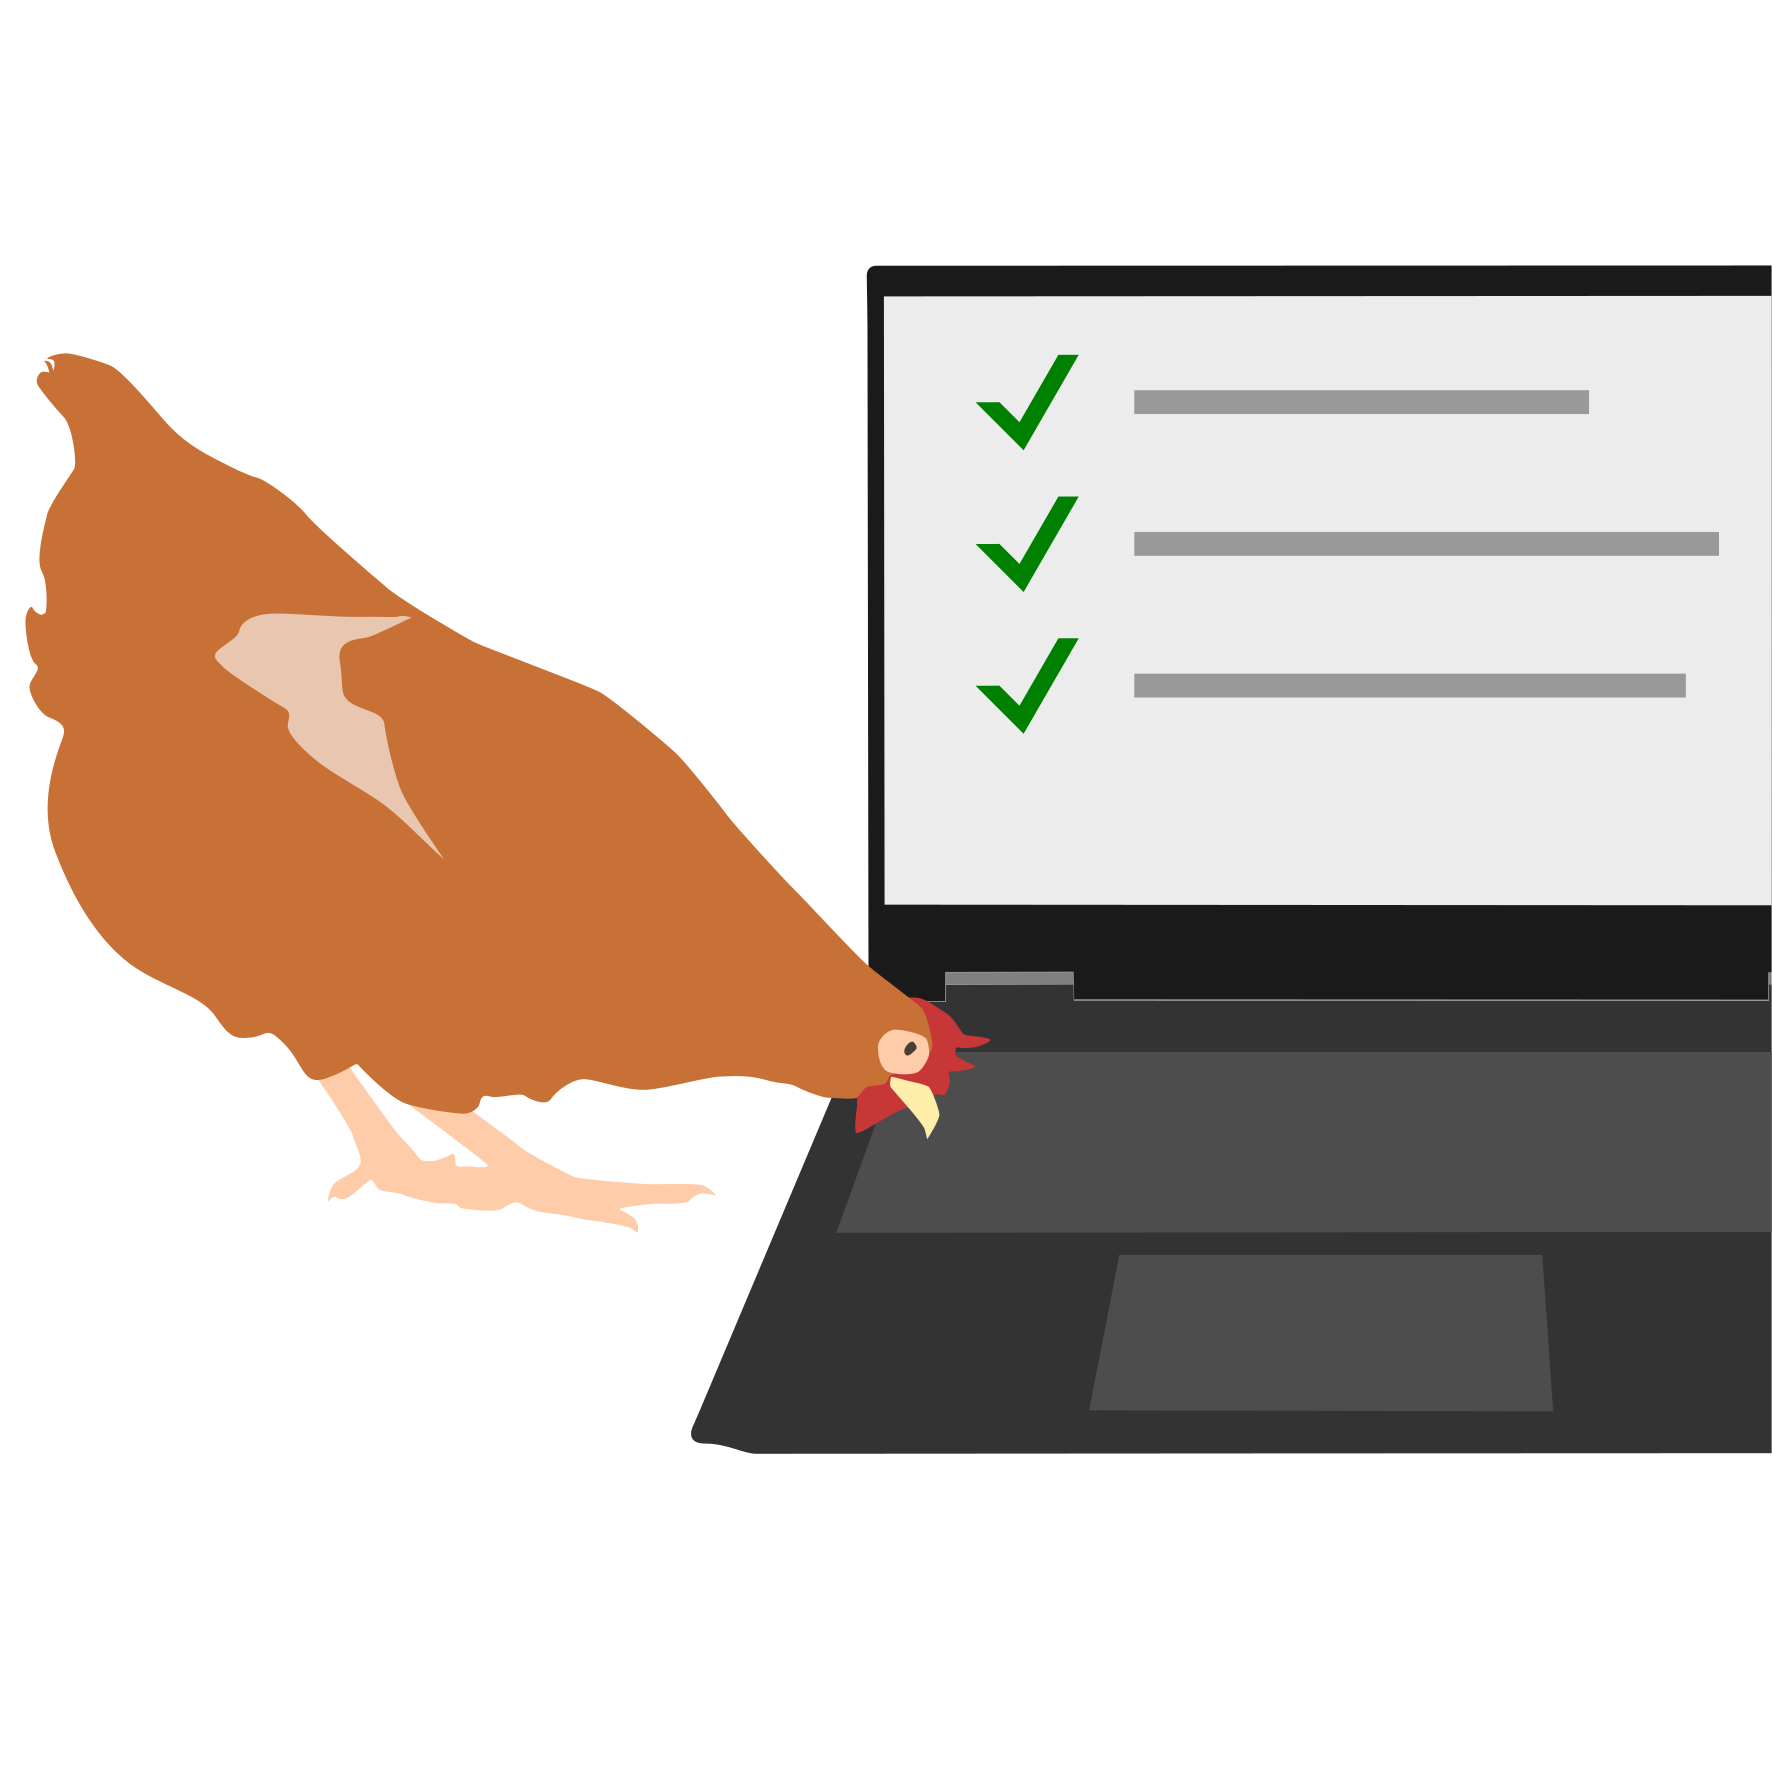 A chicken pecking at a laptop and checking items off a list.